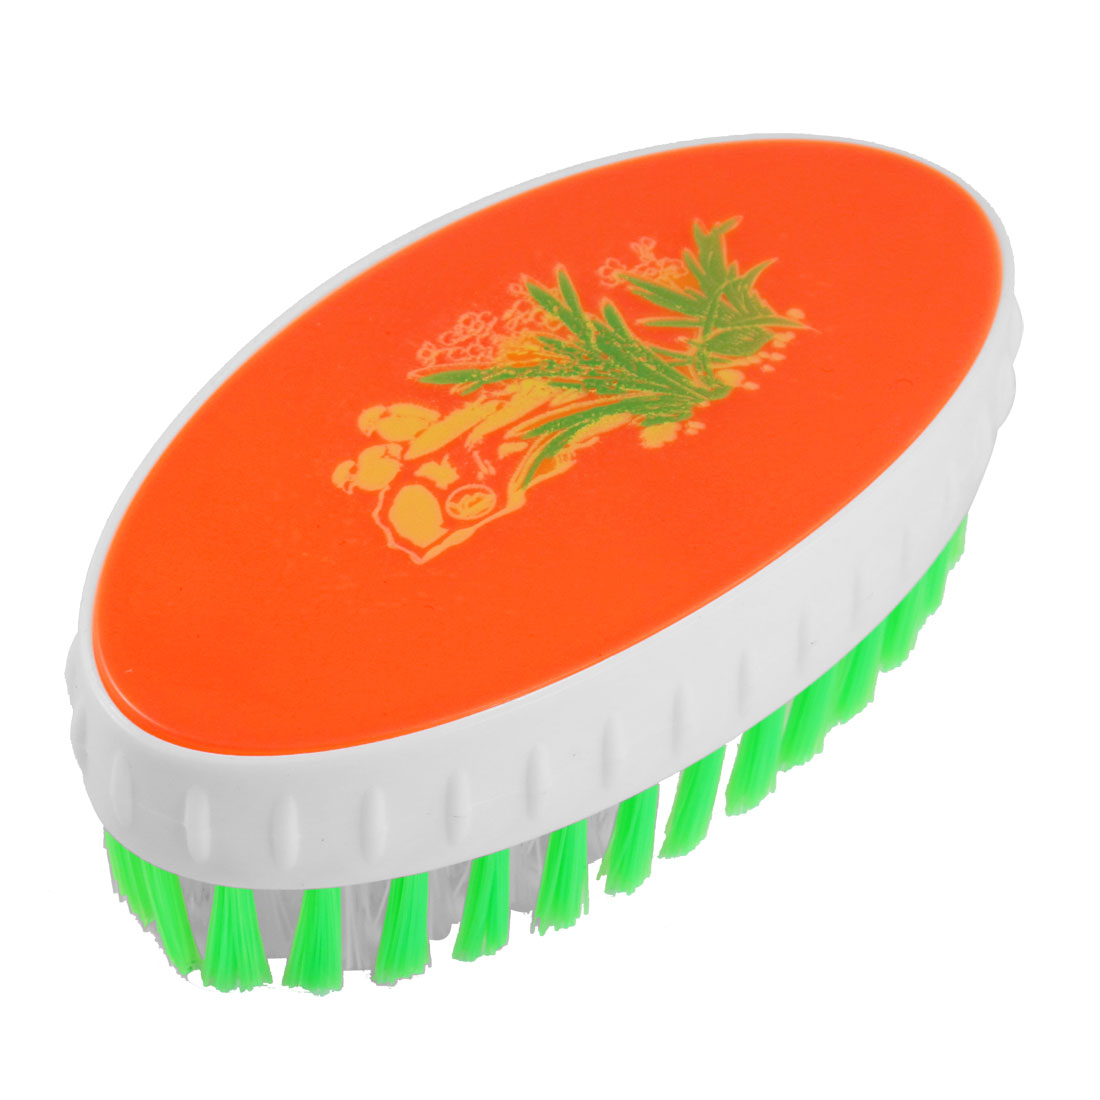 Orange Red Green Plastic Oval Shape Clothes Shoes Cleaning Scrub Brush